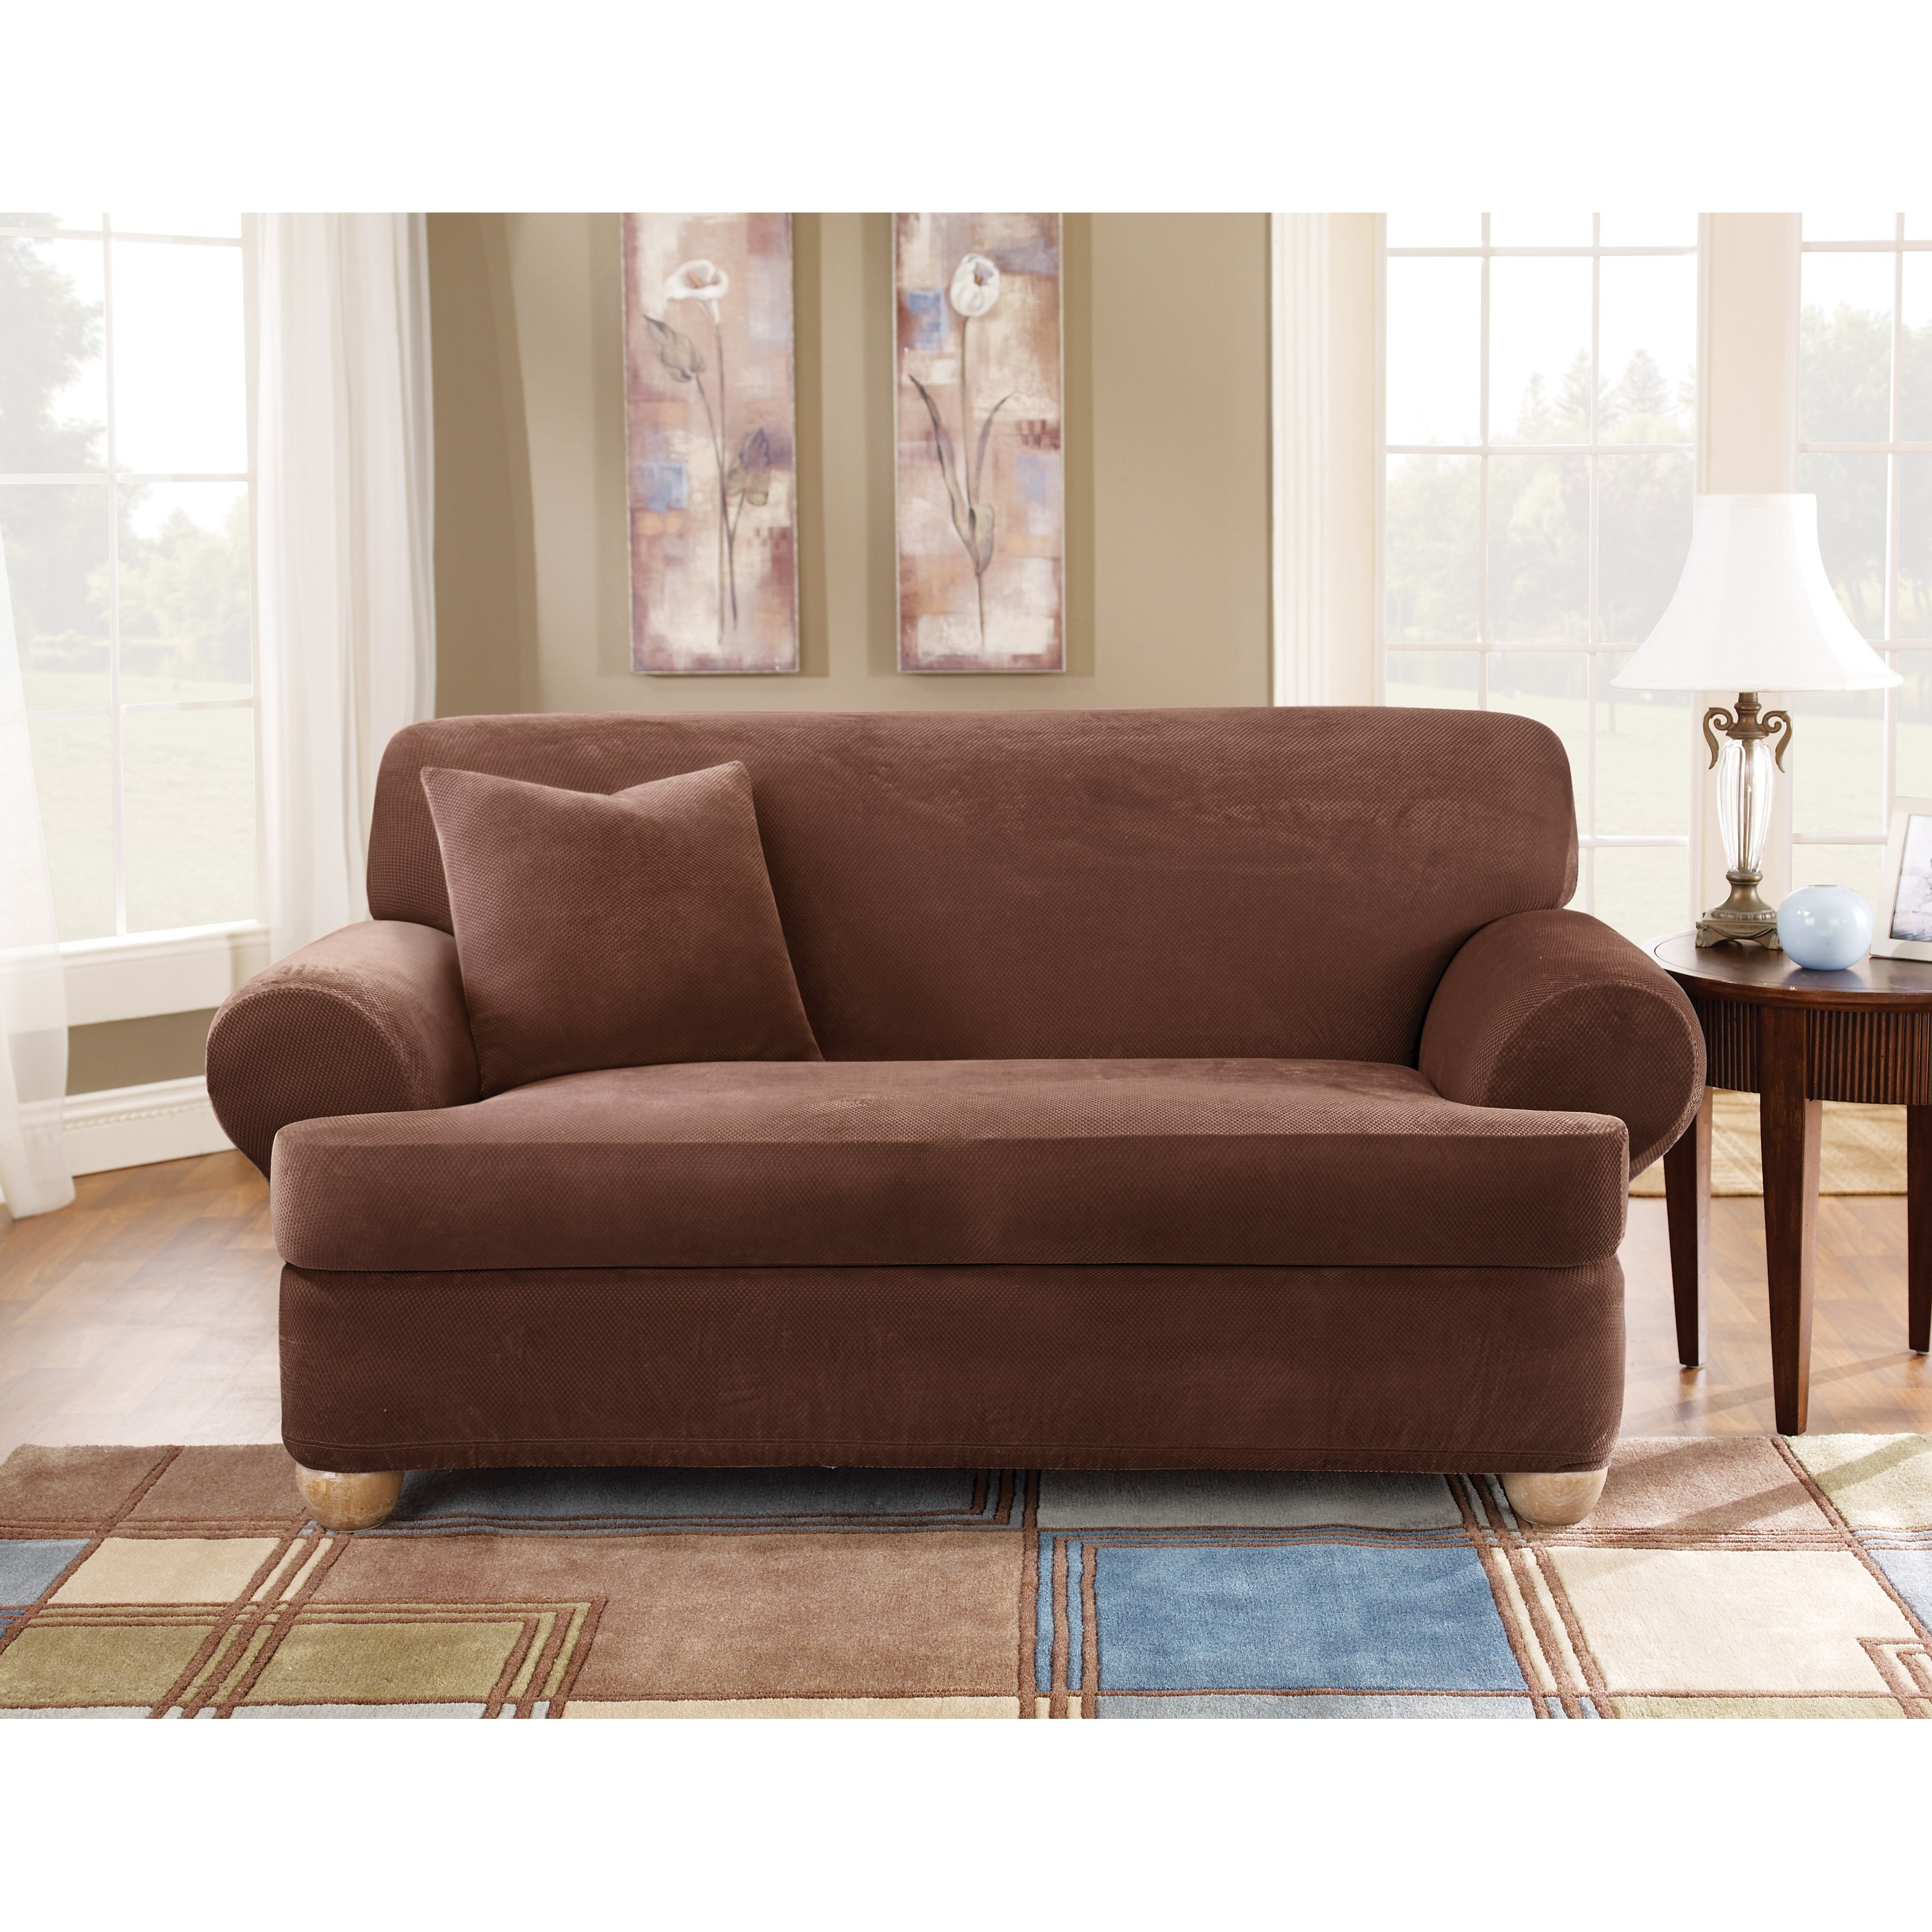 Fancy Sofas For Recent Fancy Leather Sofa Covers For Your Tips Slipcover For Leather Sofa (View 4 of 20)